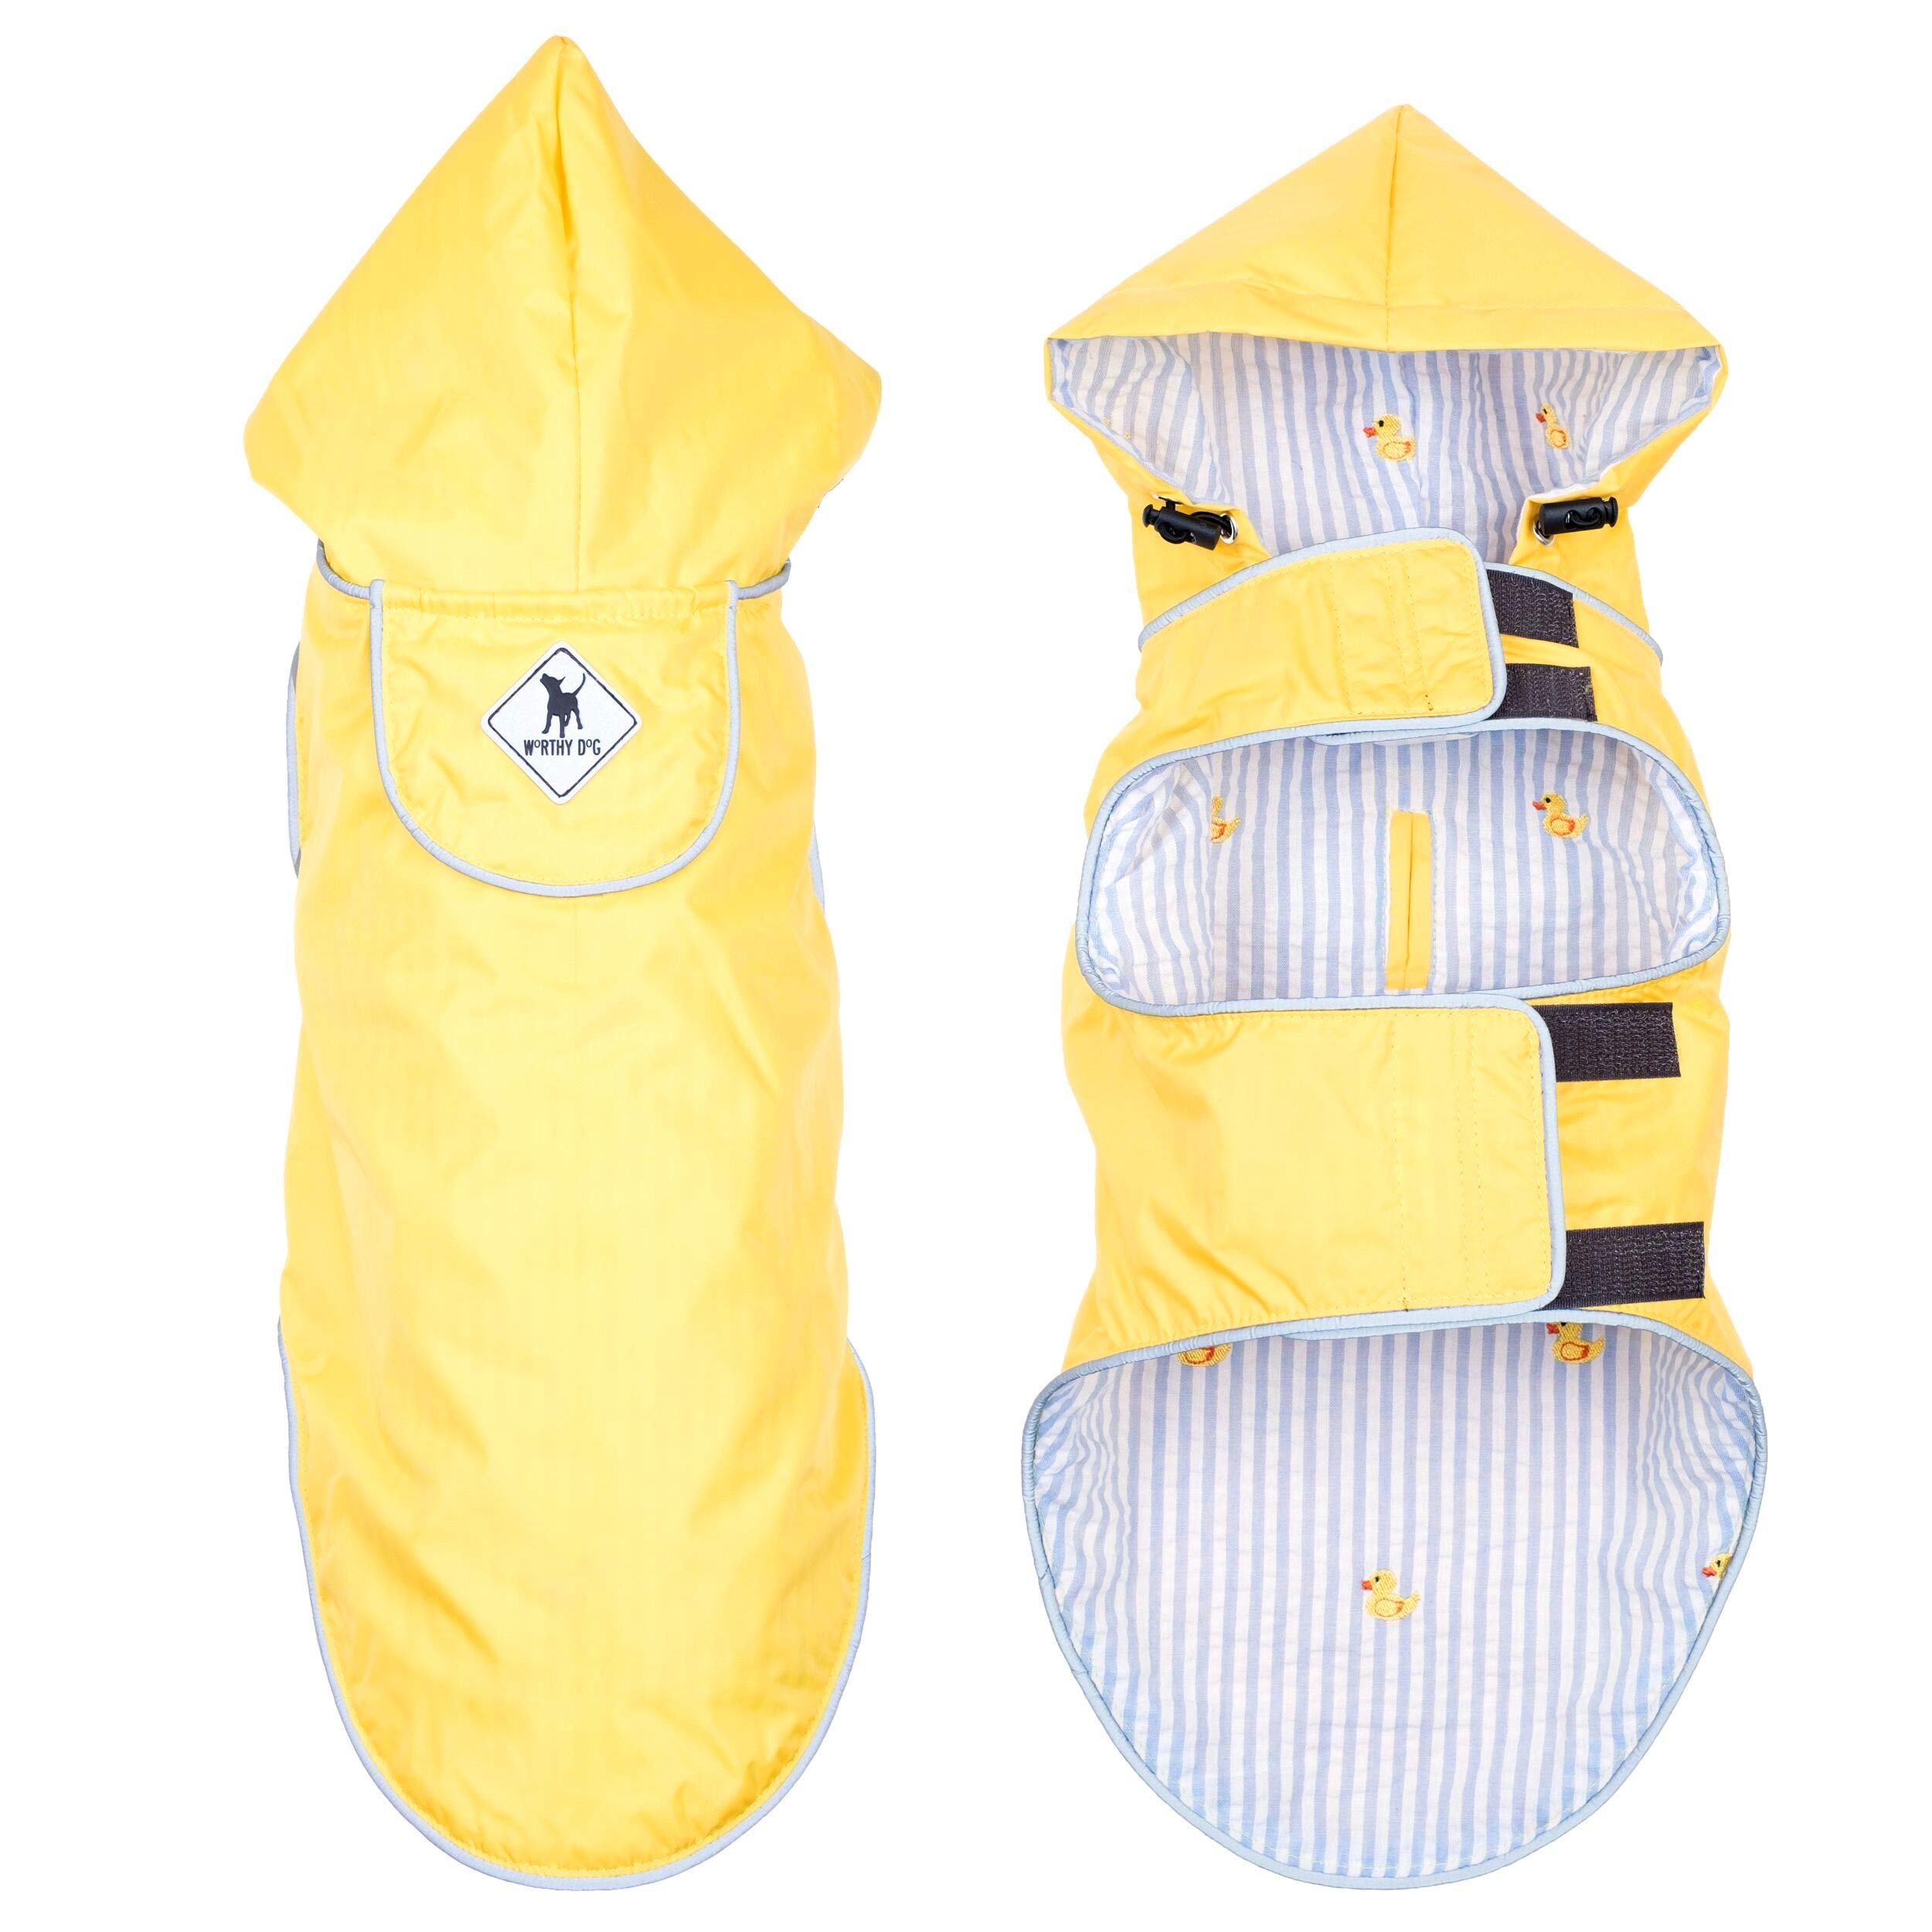 The Worthy Dog Seattle Slicker Wind and Water Resistant Hooded Rain Jacket with Reflective Trim for Small Medium Large Dogs, Yellow, SM